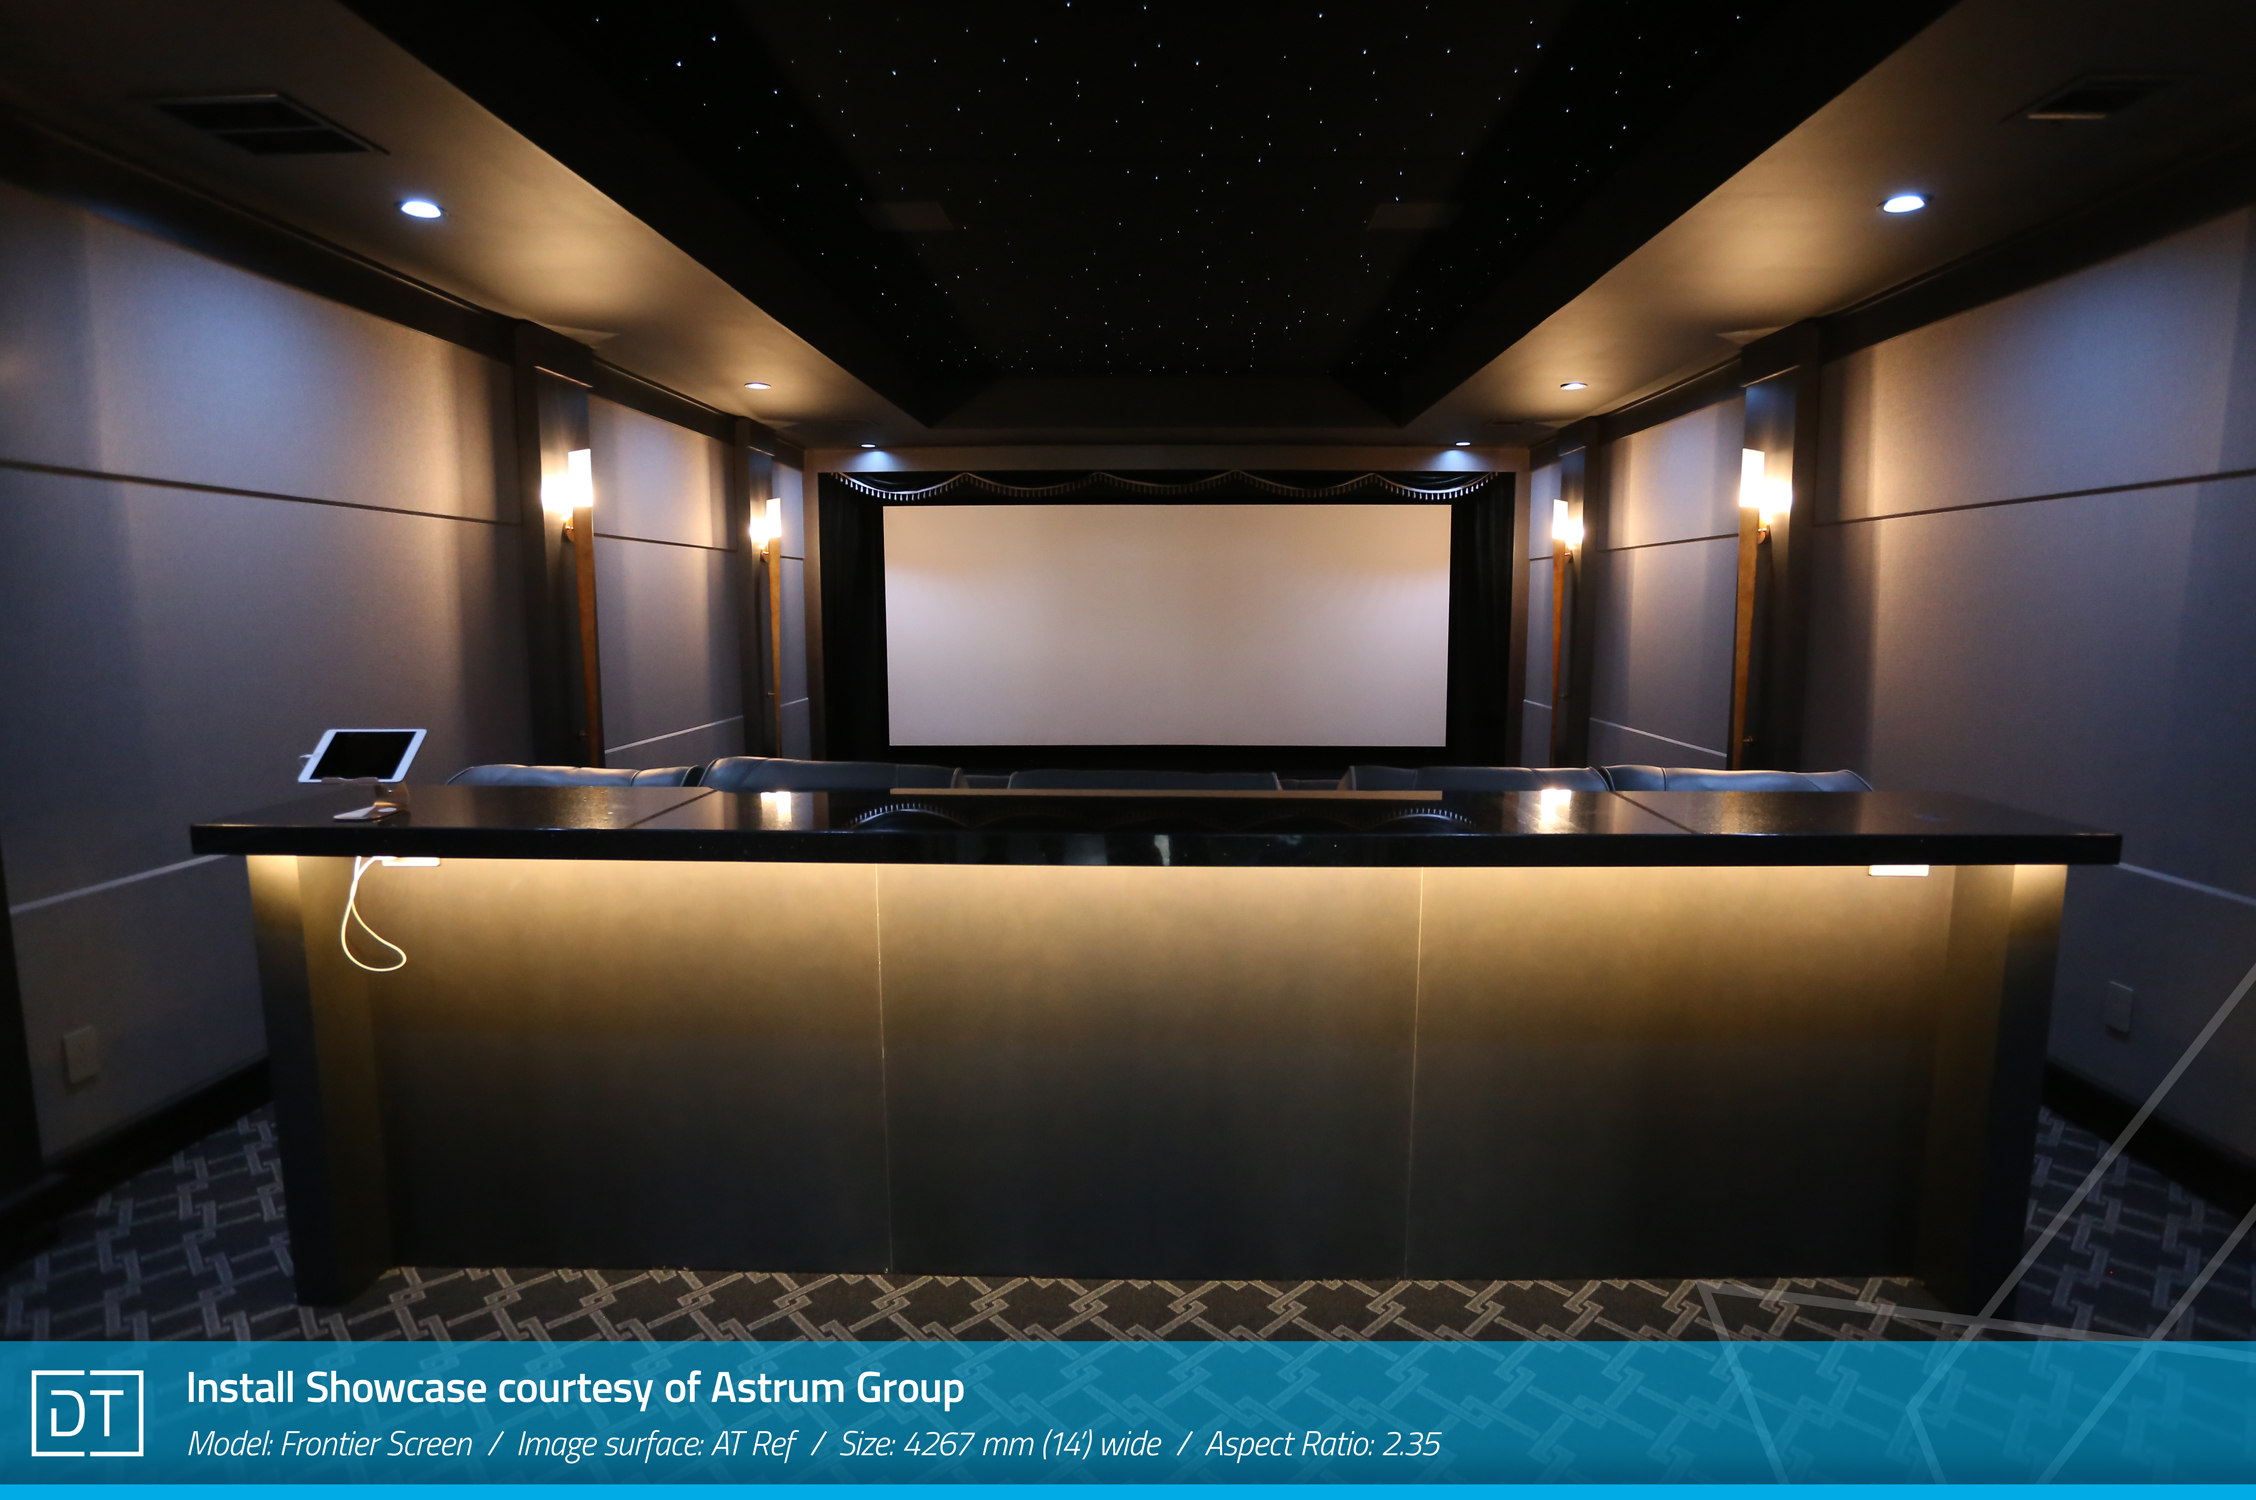 Install Showcase courtesy of Astrum Group - Model: Frontier Screen, Image surface: AT Ref, Width: 4267mm (14ft) wide, Aspect: 2.35